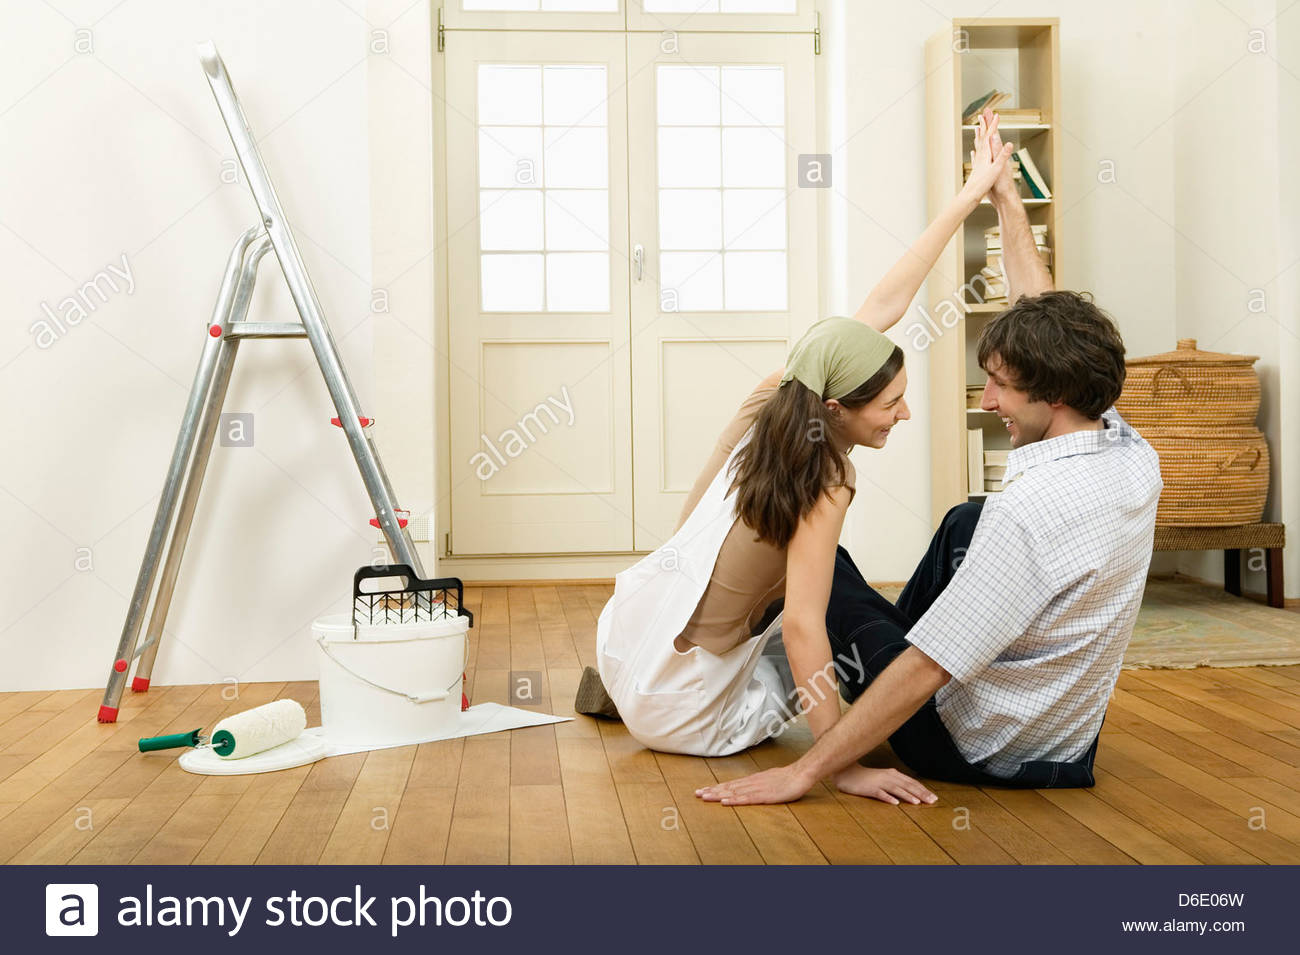 Couple decorating new home Stock Photo: 55626561 - Alamy